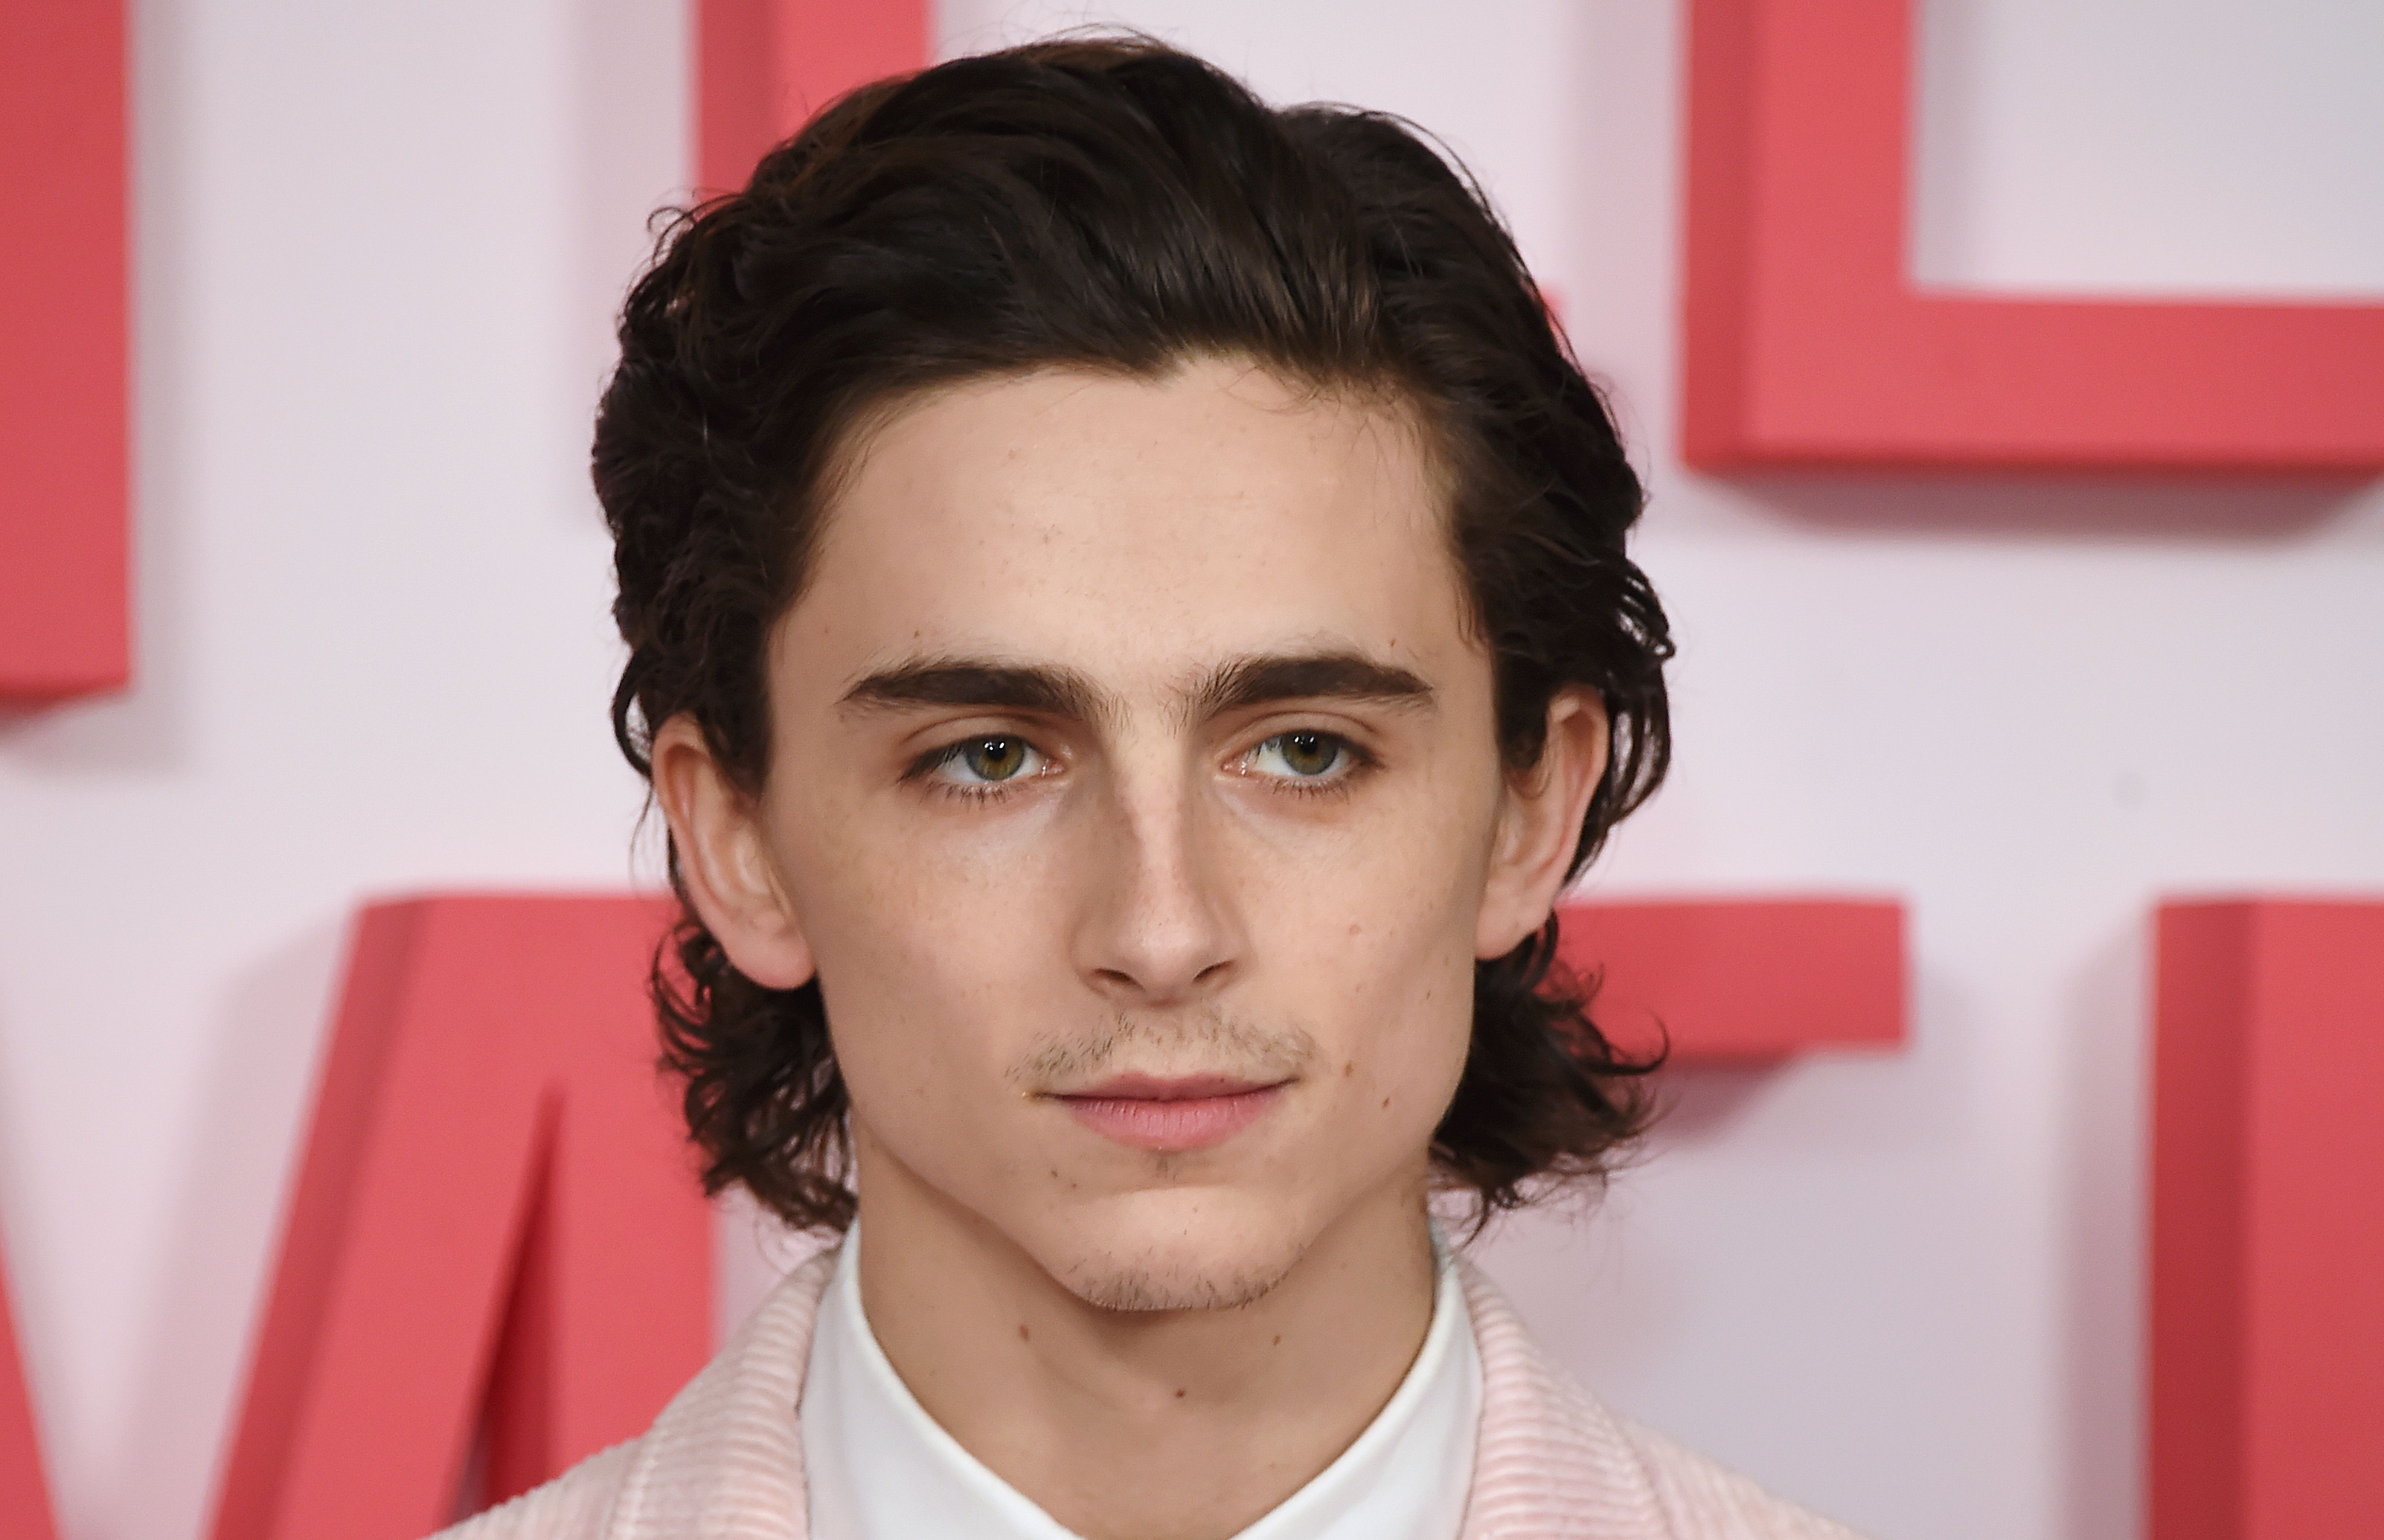 This TikToker's Transformation Into Timothée Chalamet Is The Reason I Have Trust Issues